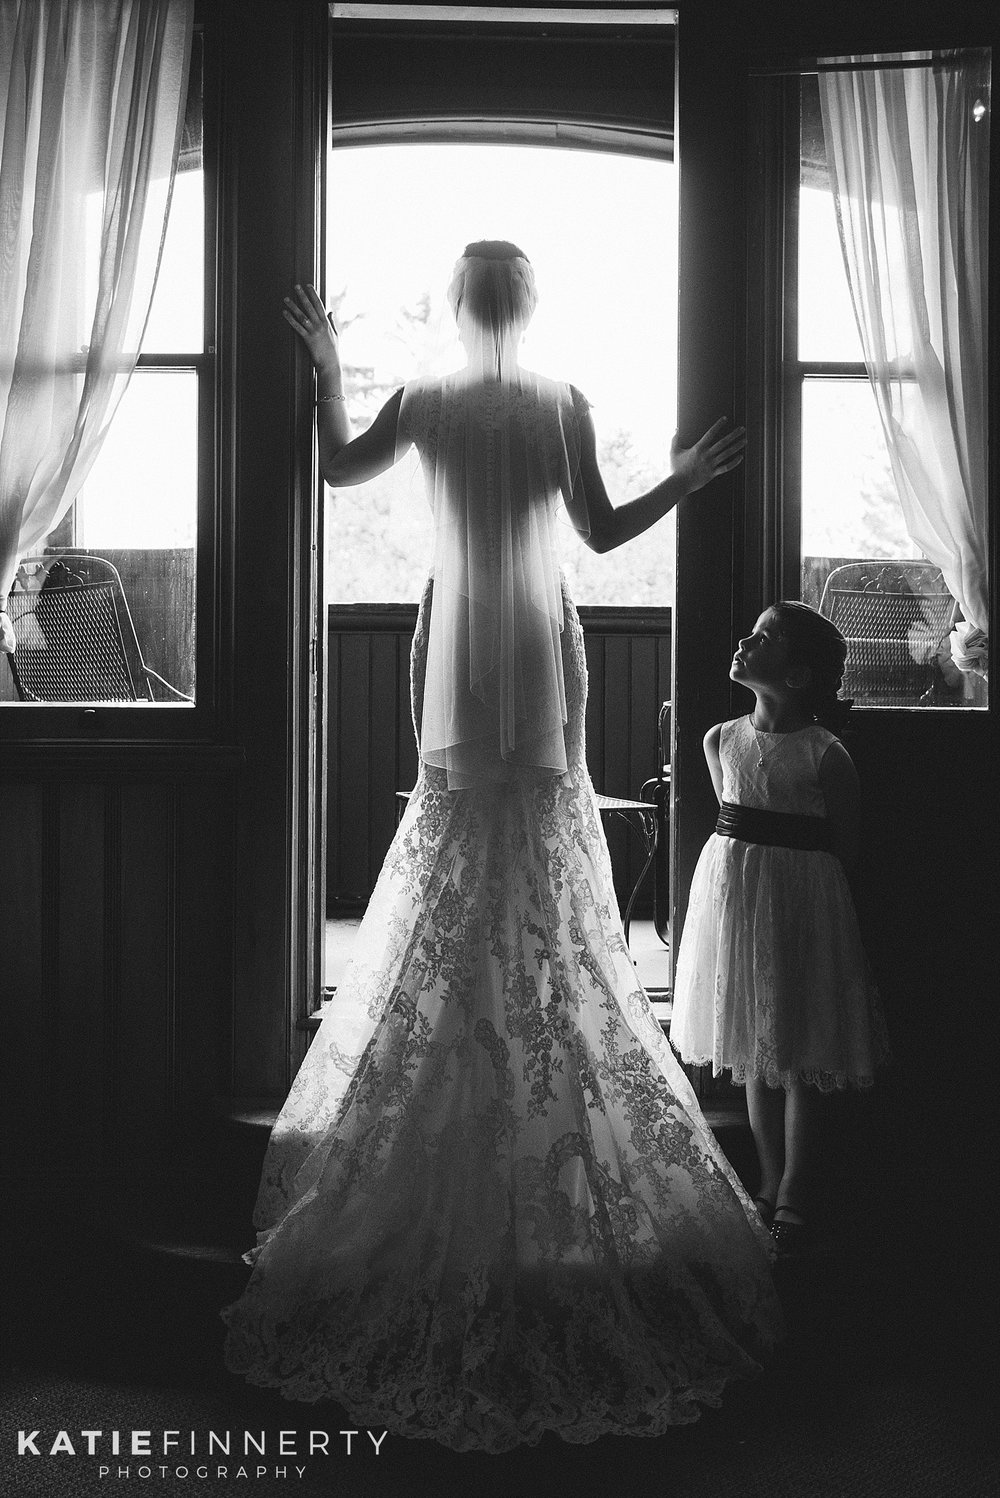 Belhurst Castle Bride Silhouette Wedding Photography